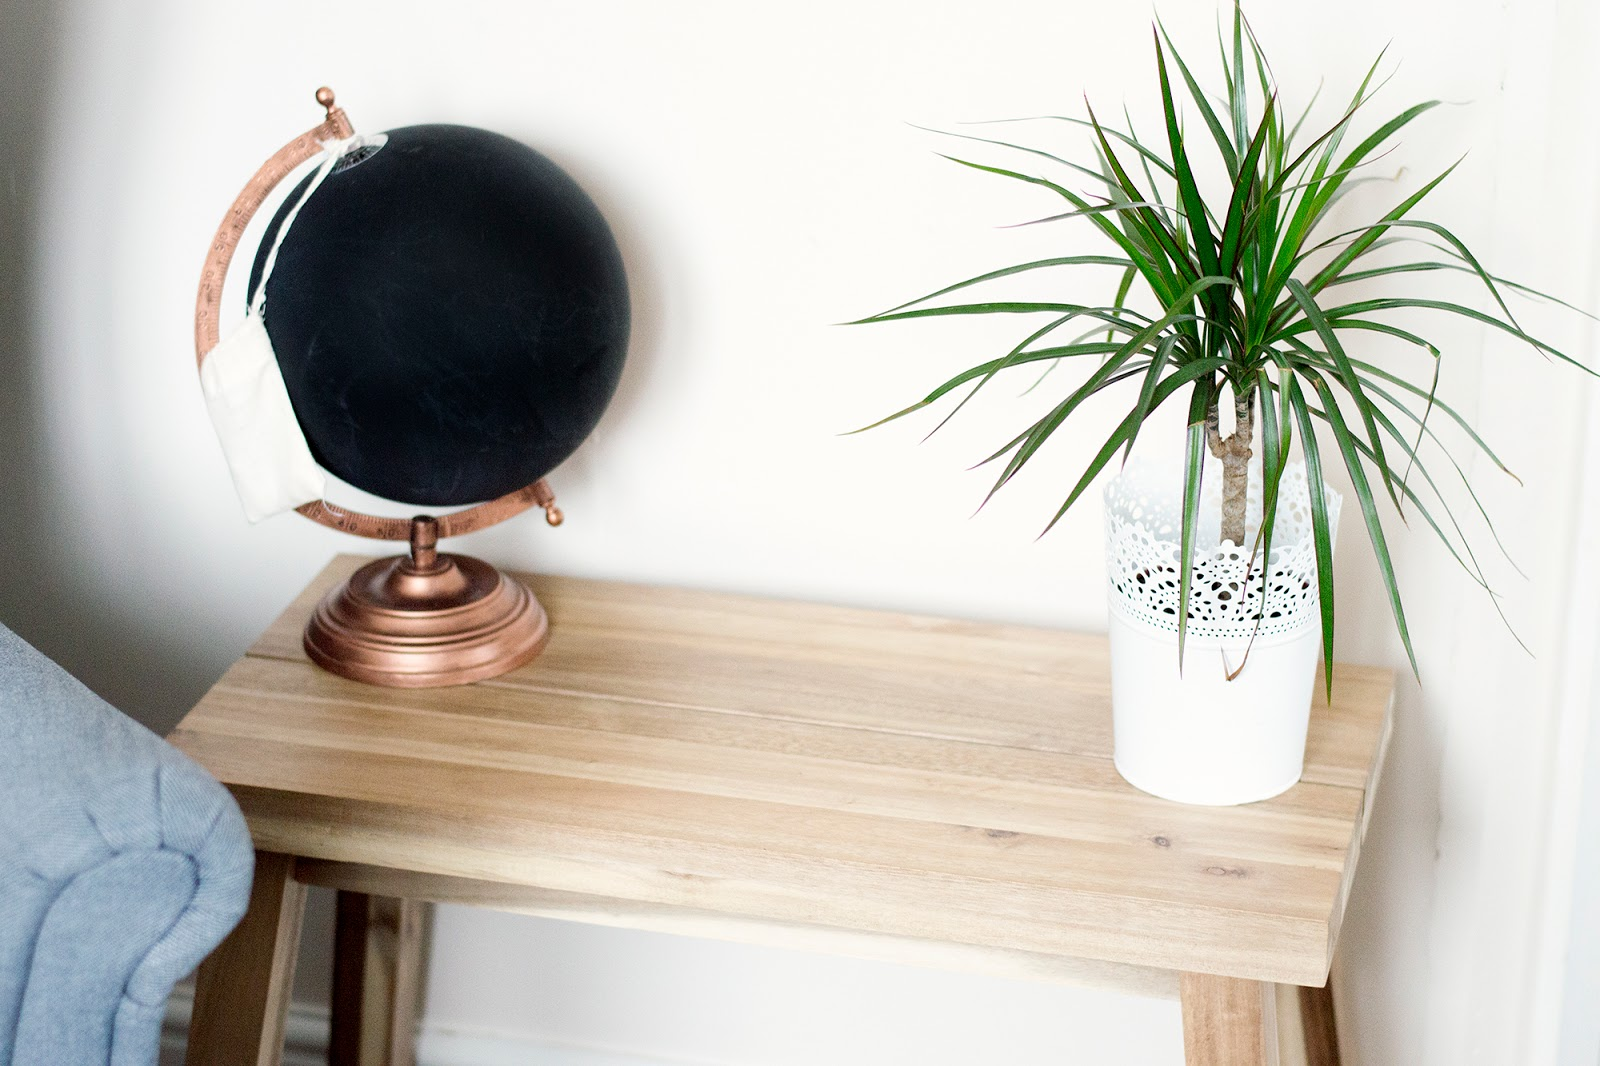 copper homeware, plants, minimal, interiors, ikea, home, lifestyle bloggers, lbloggers,